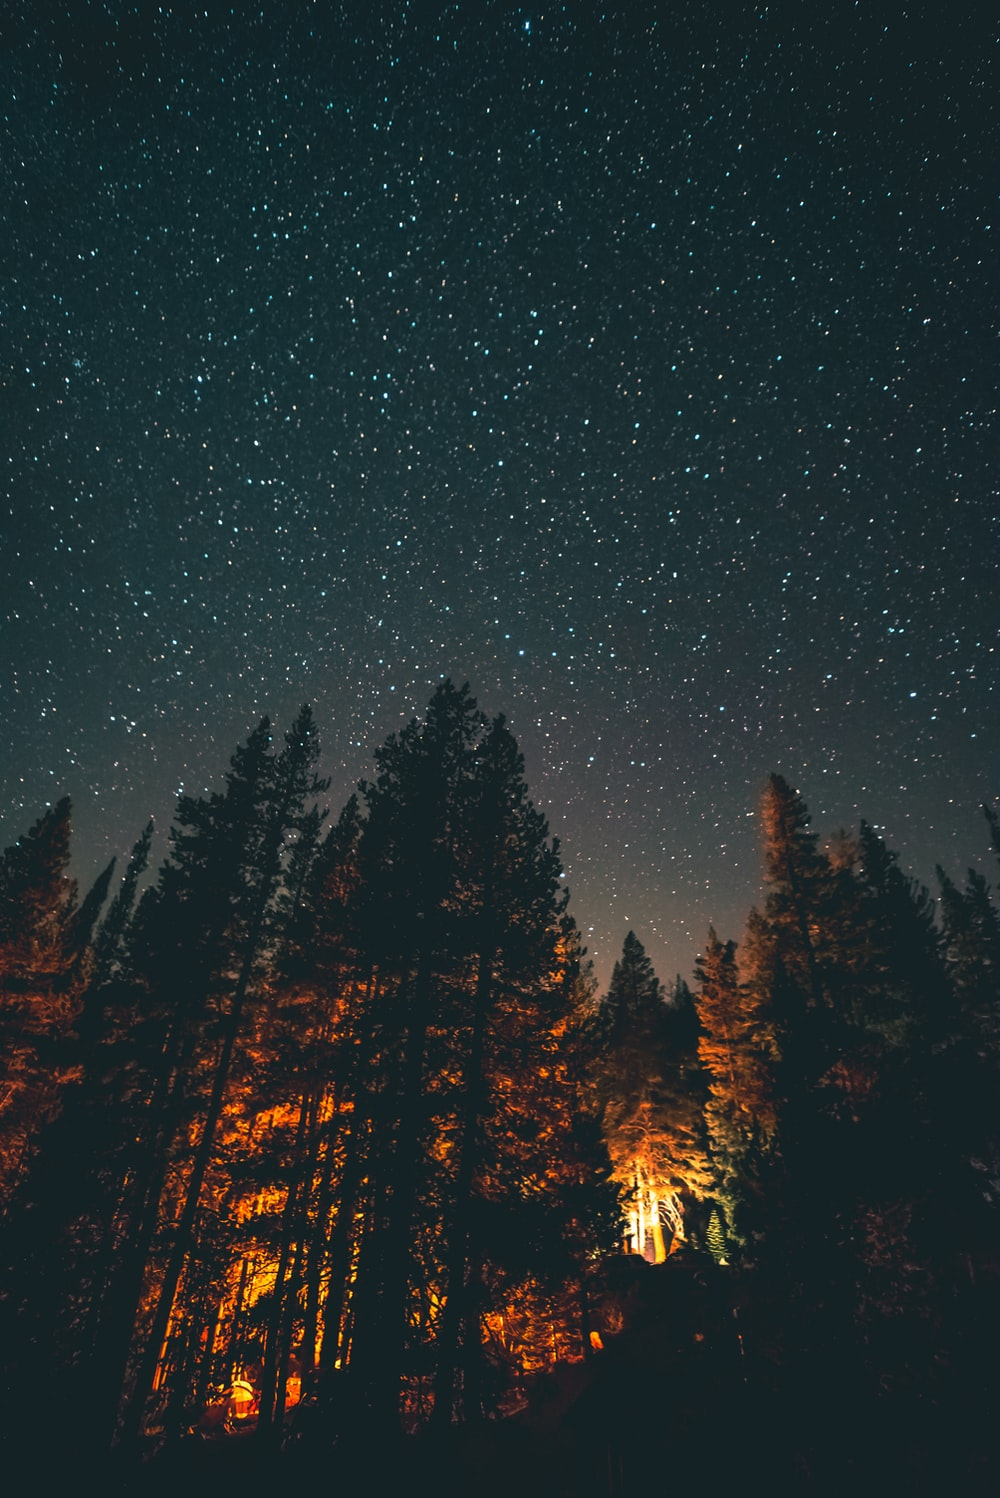 trees under the stars